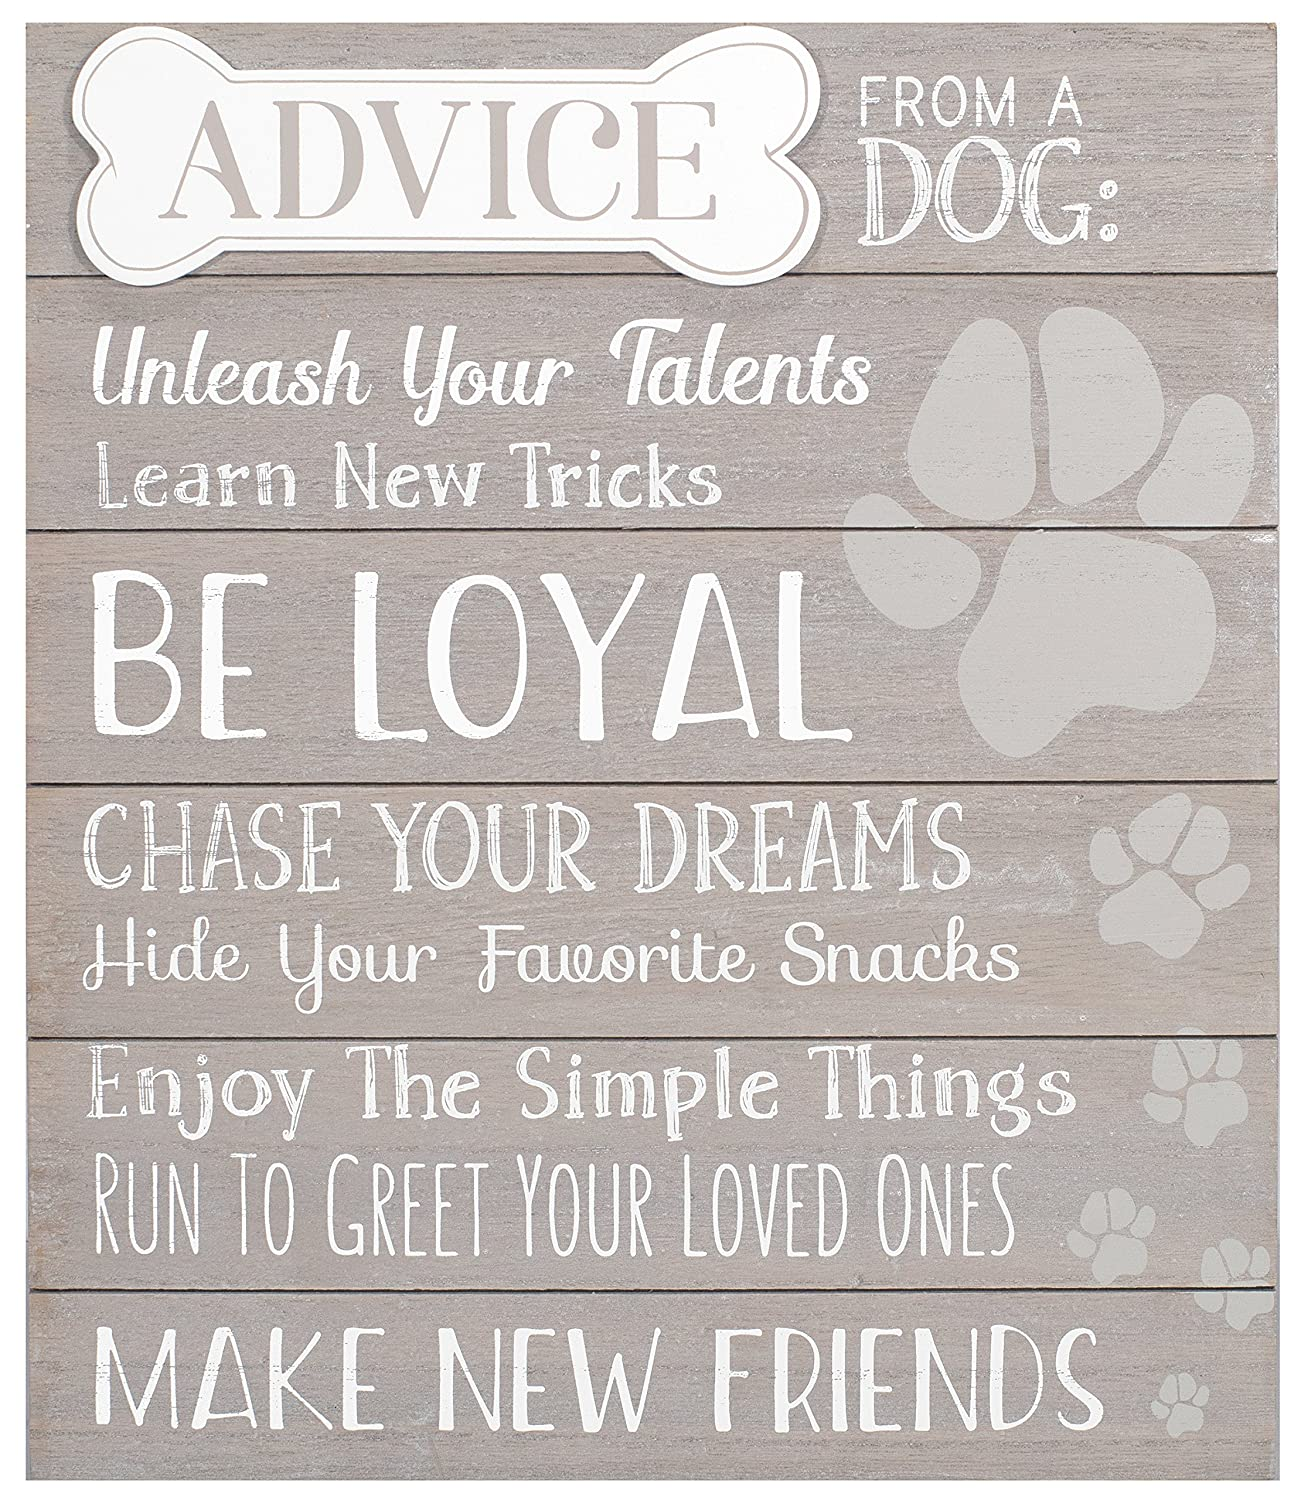 Malden International Designs 20078-01 at Home Dé cor Advice from A Dog, 12x14, Gray